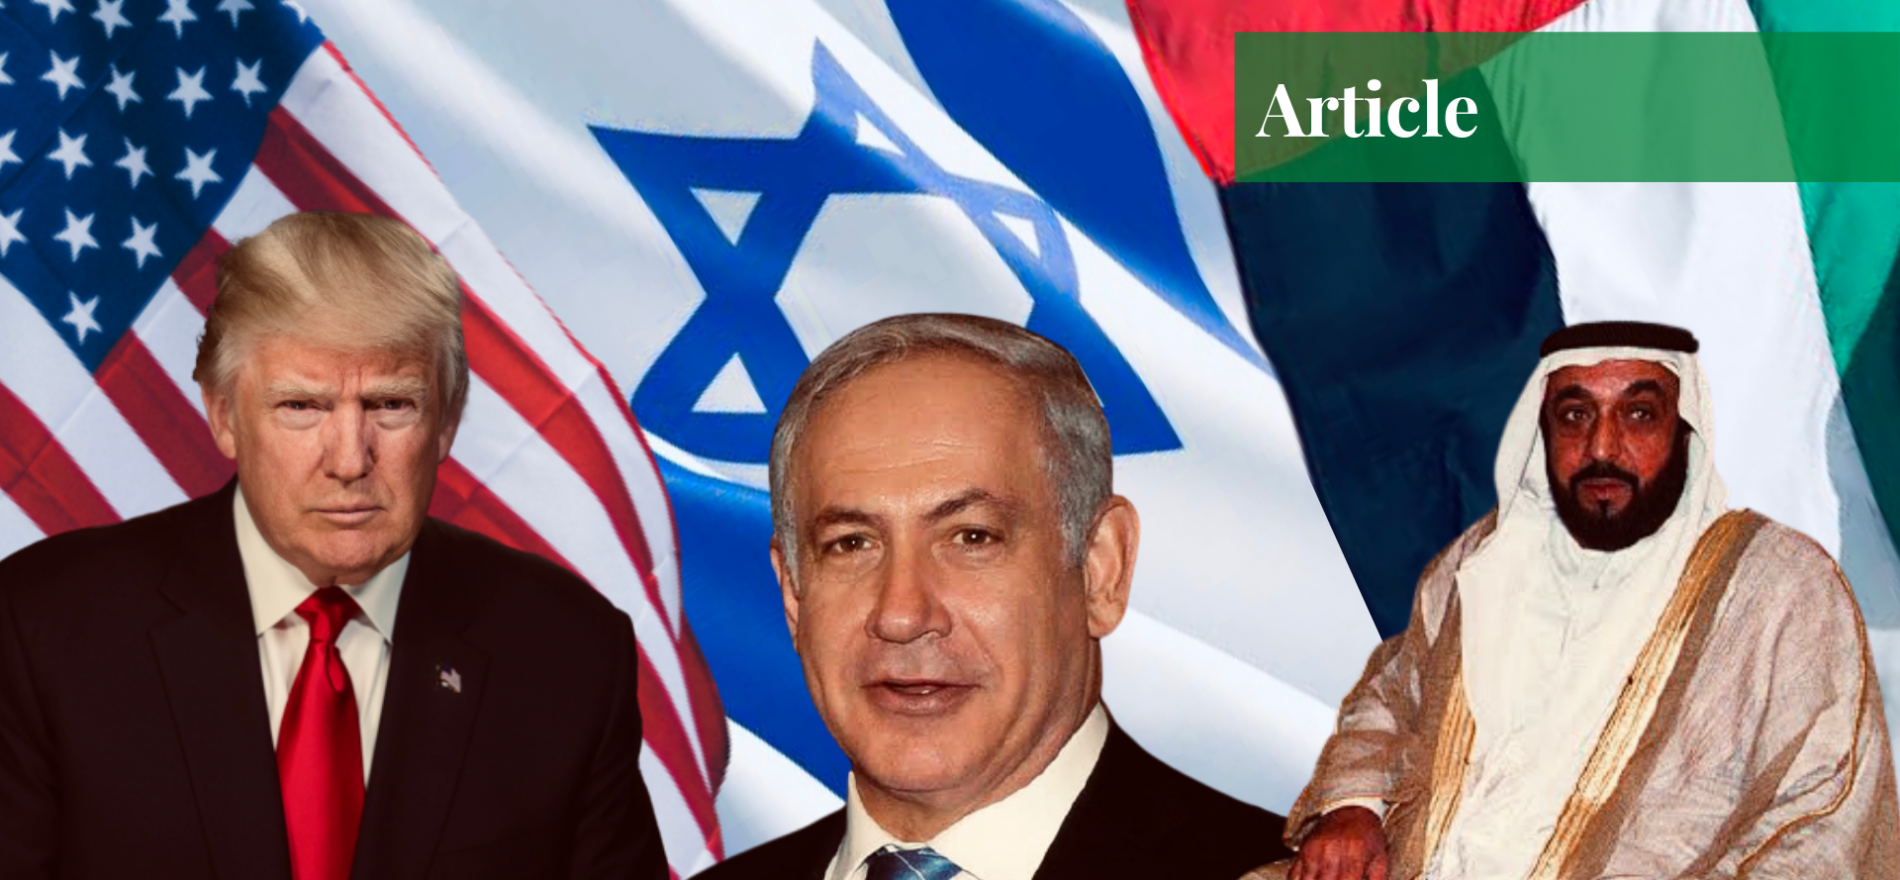 Arab israel relations